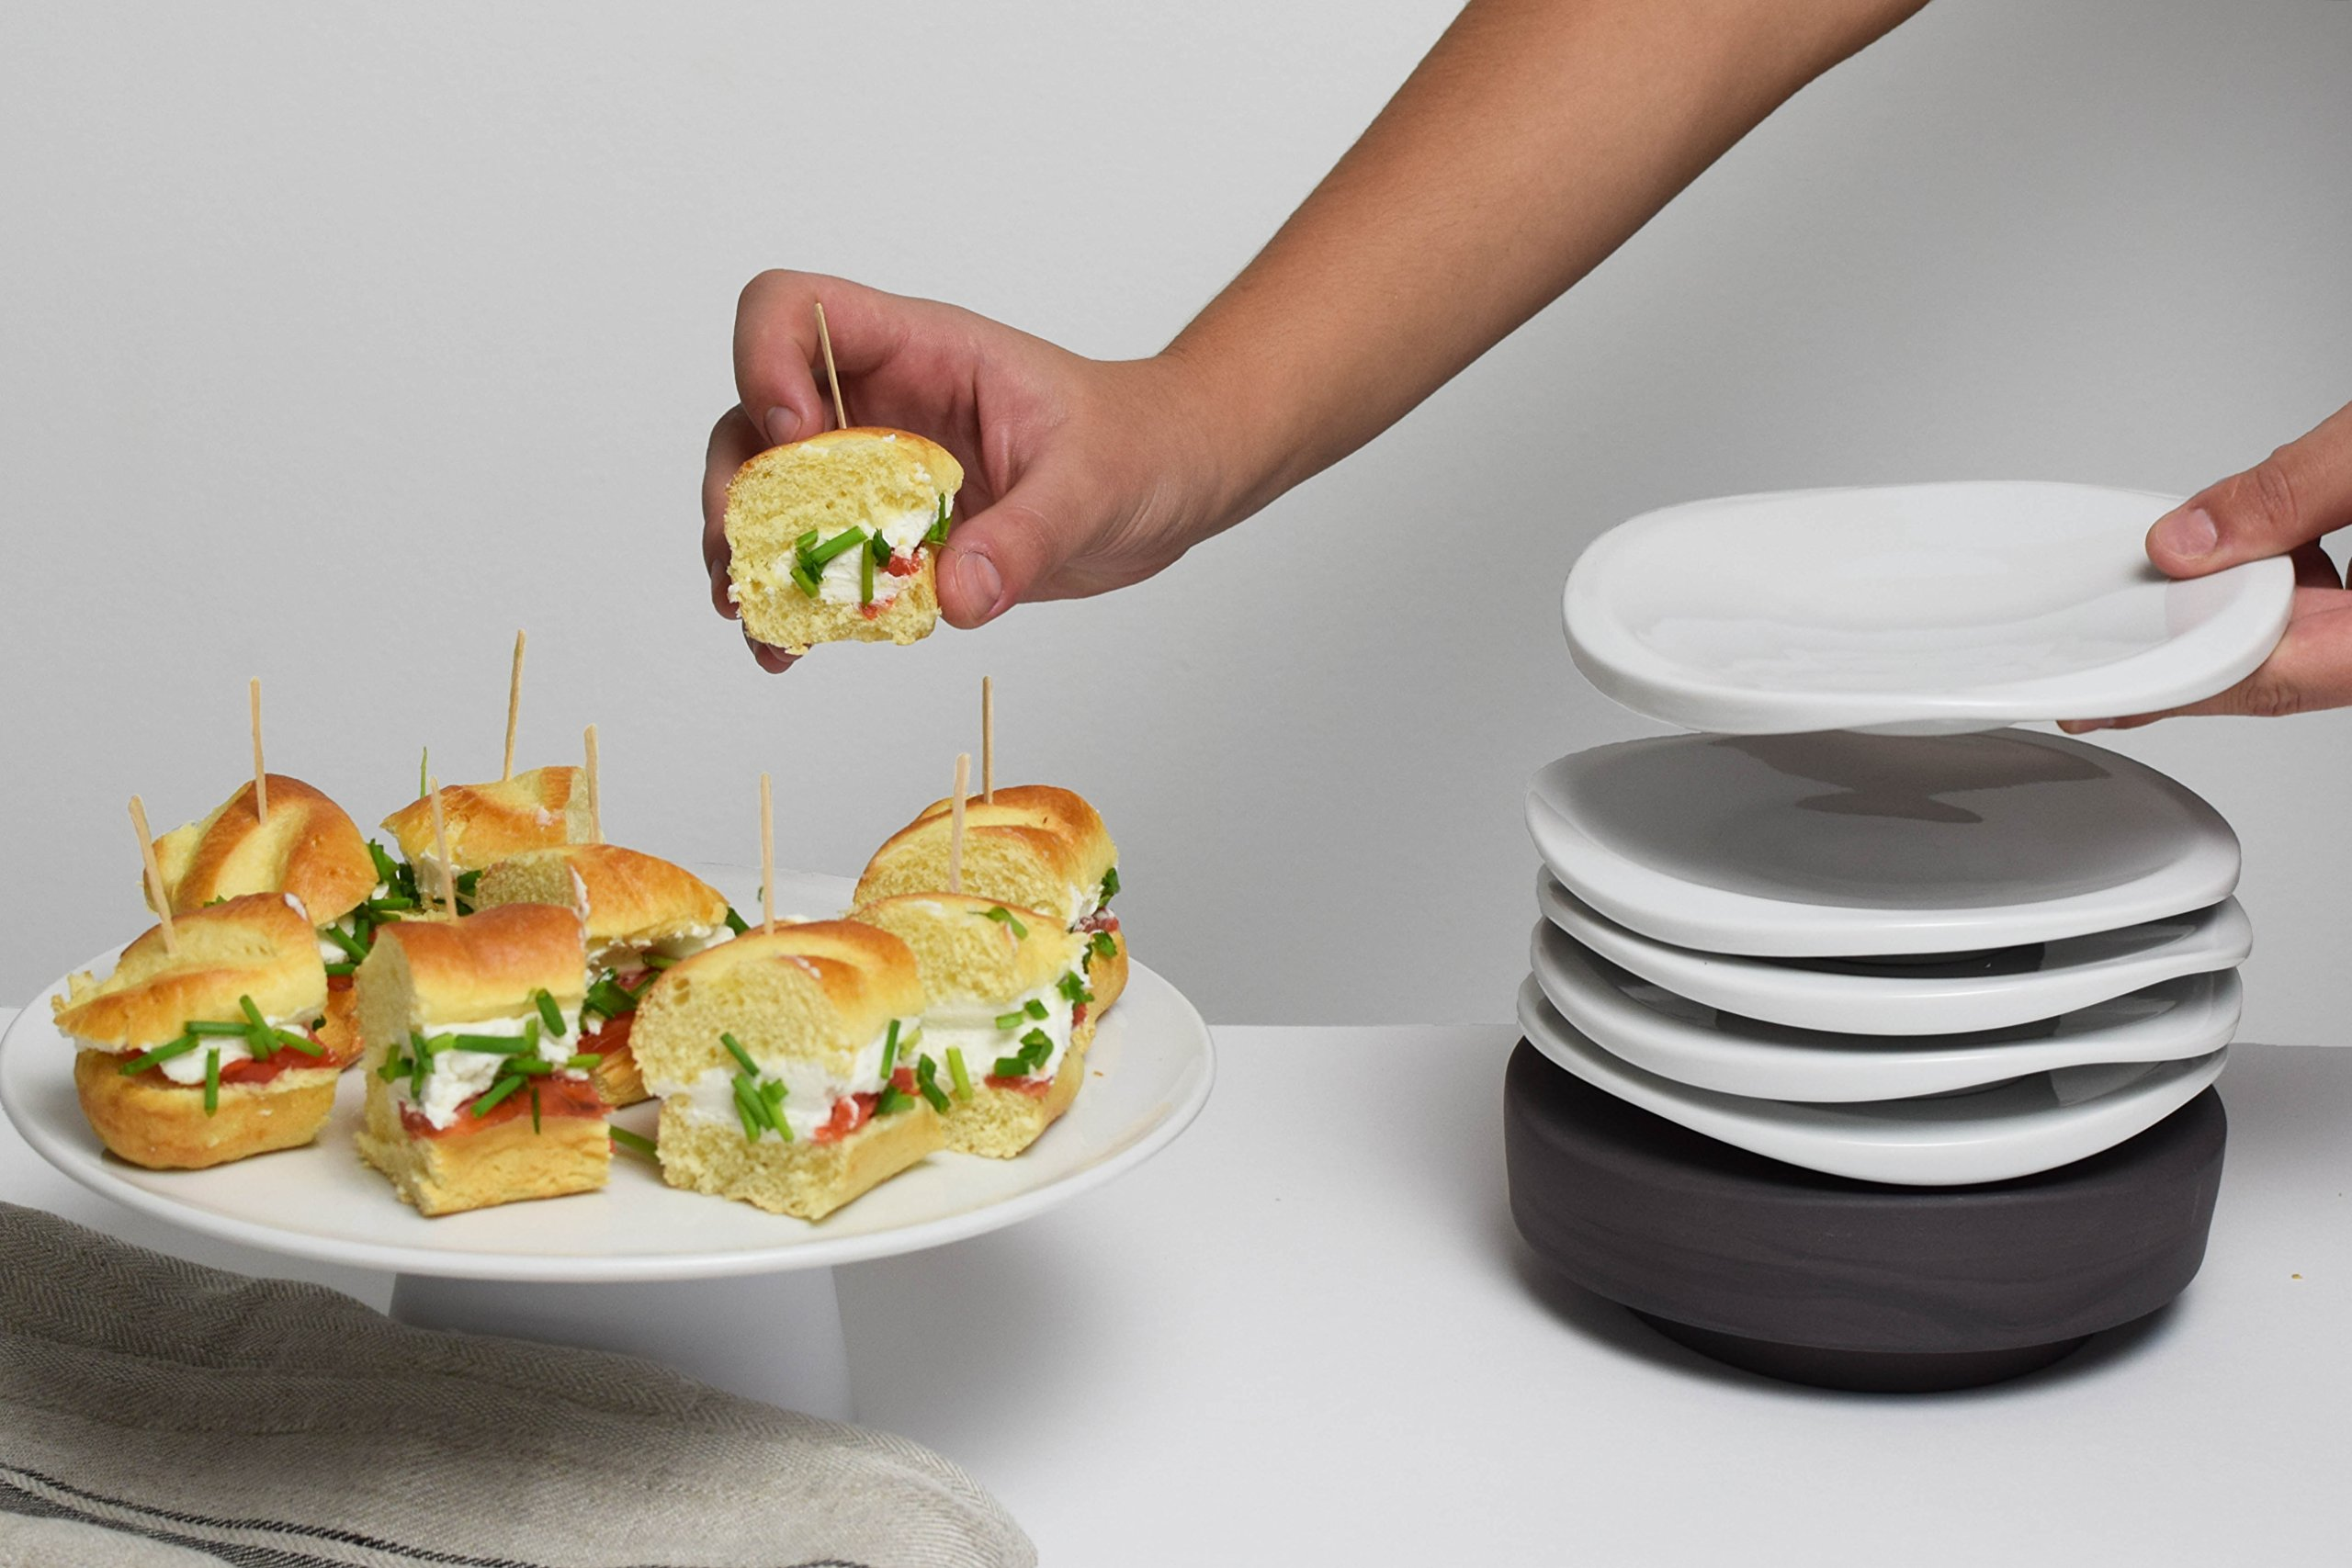 bakerly Filled Crepes & Brioches Variety Pack of 6 (24 Crepes + 4 Baguettes + 8 Brioche Rolls) by bakerly (Image #7)